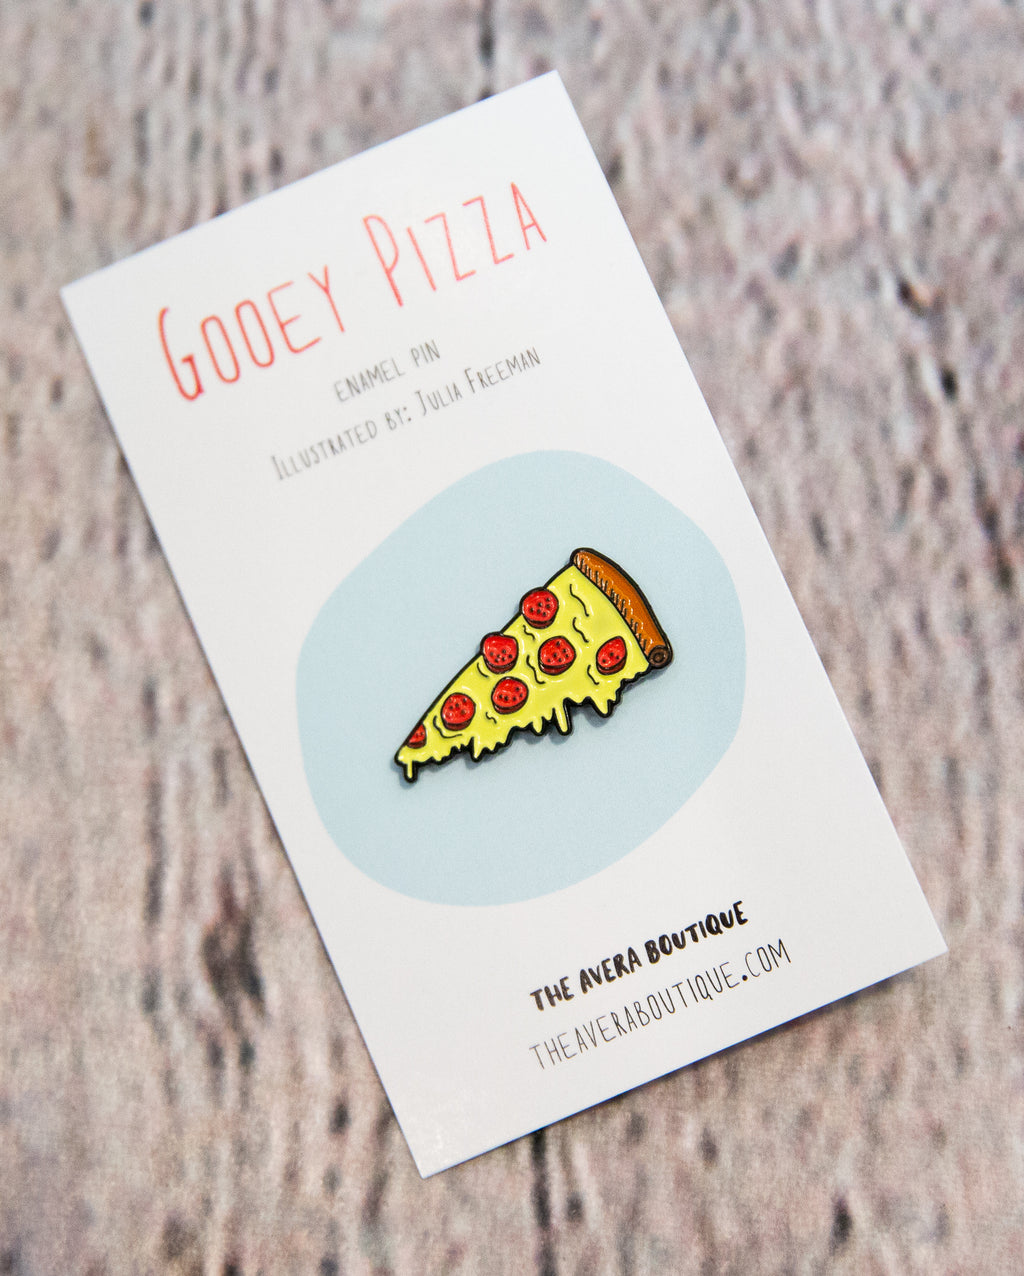 GOOEY PIZZA SOFT ENAMEL PIN